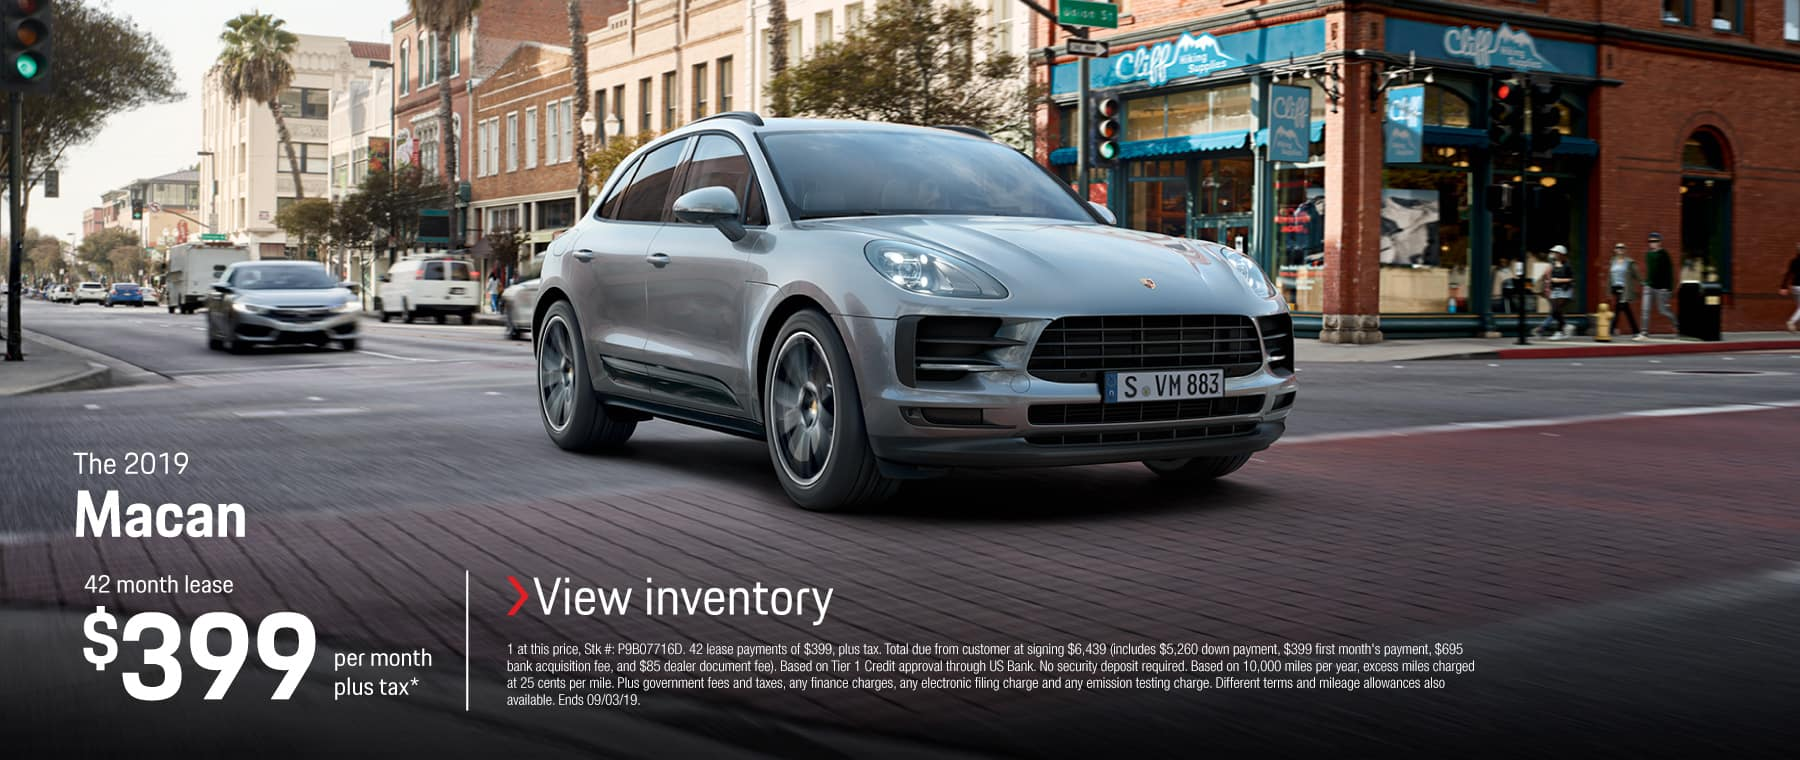 2019 MACAN LEASE 399 / 42 MONTHS